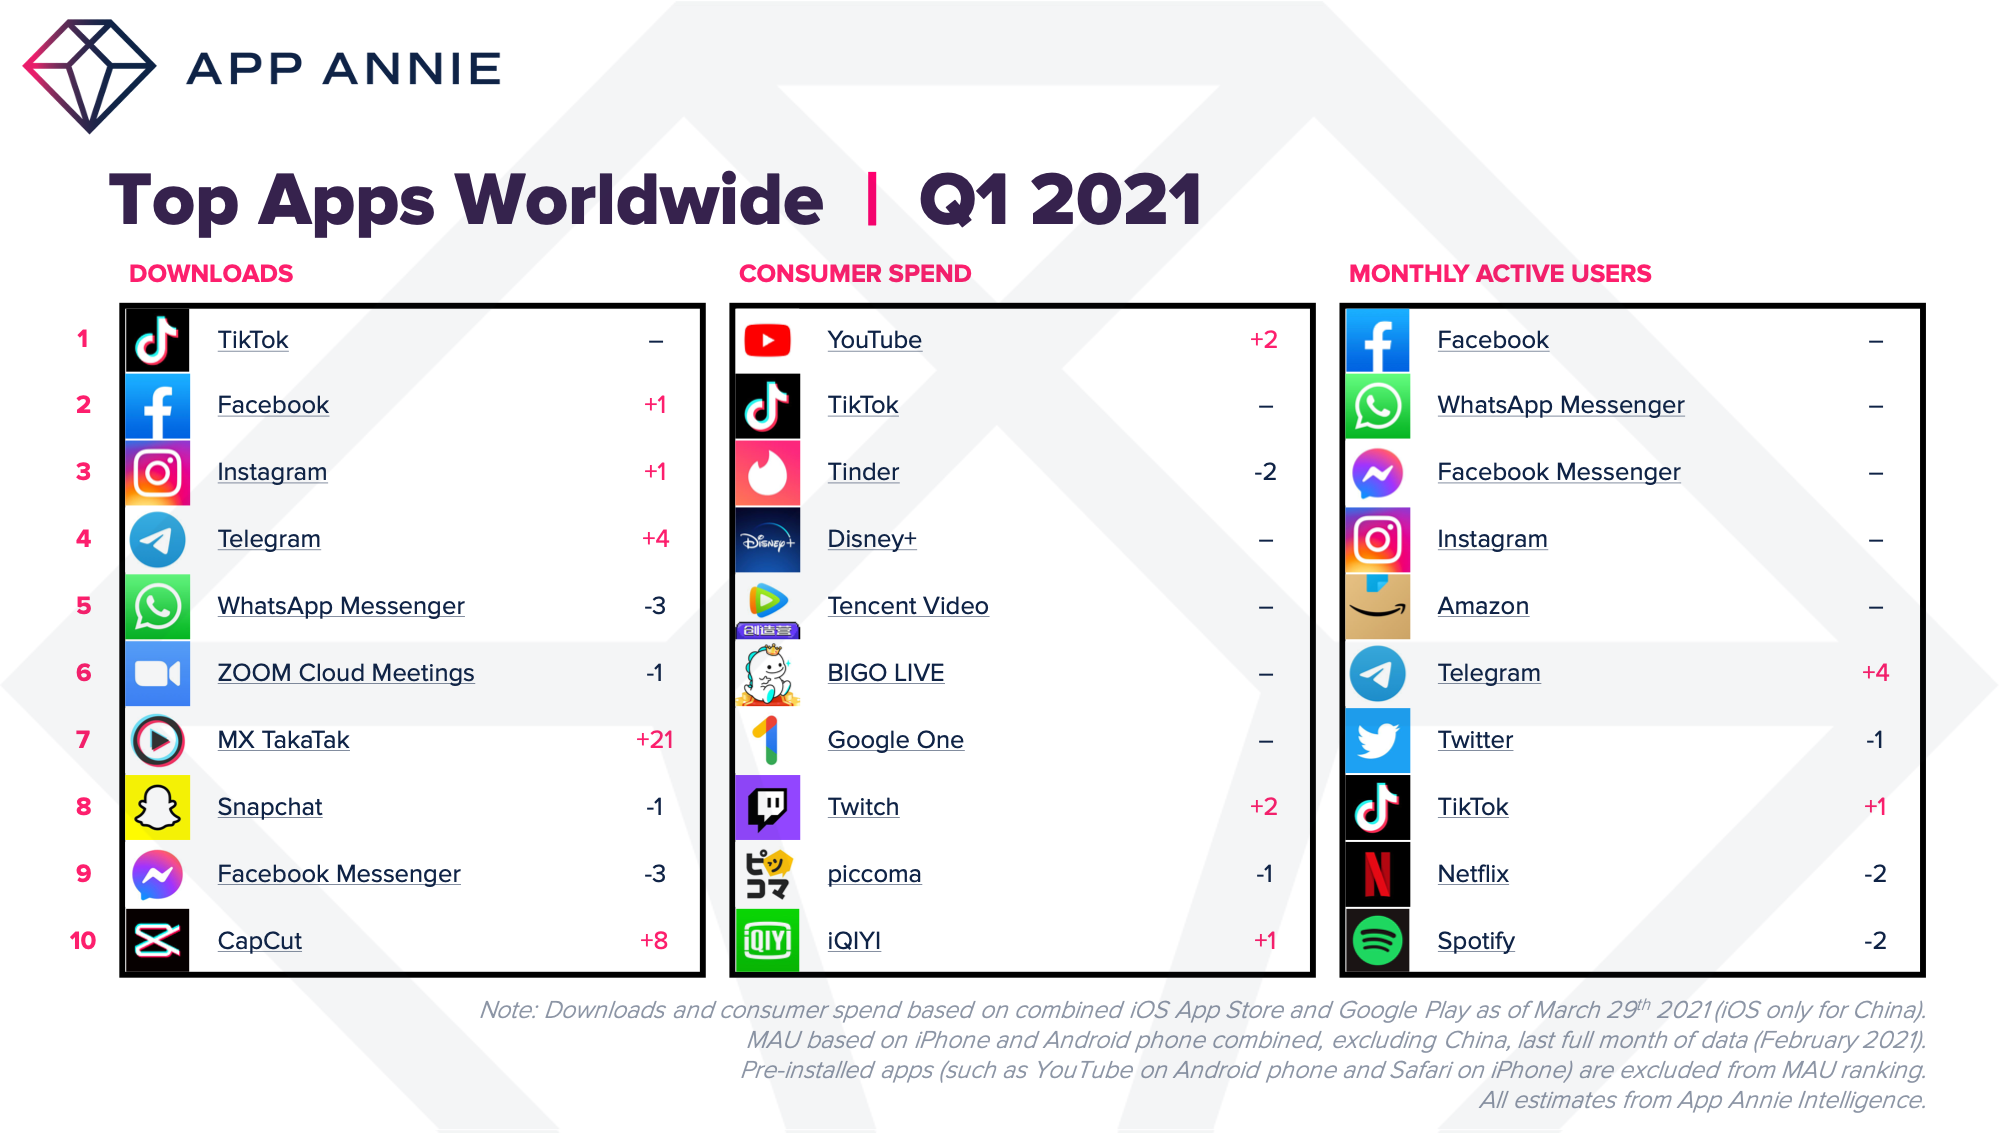 Consumers spent $32B on apps in Q1 2021, the biggest quarter on record